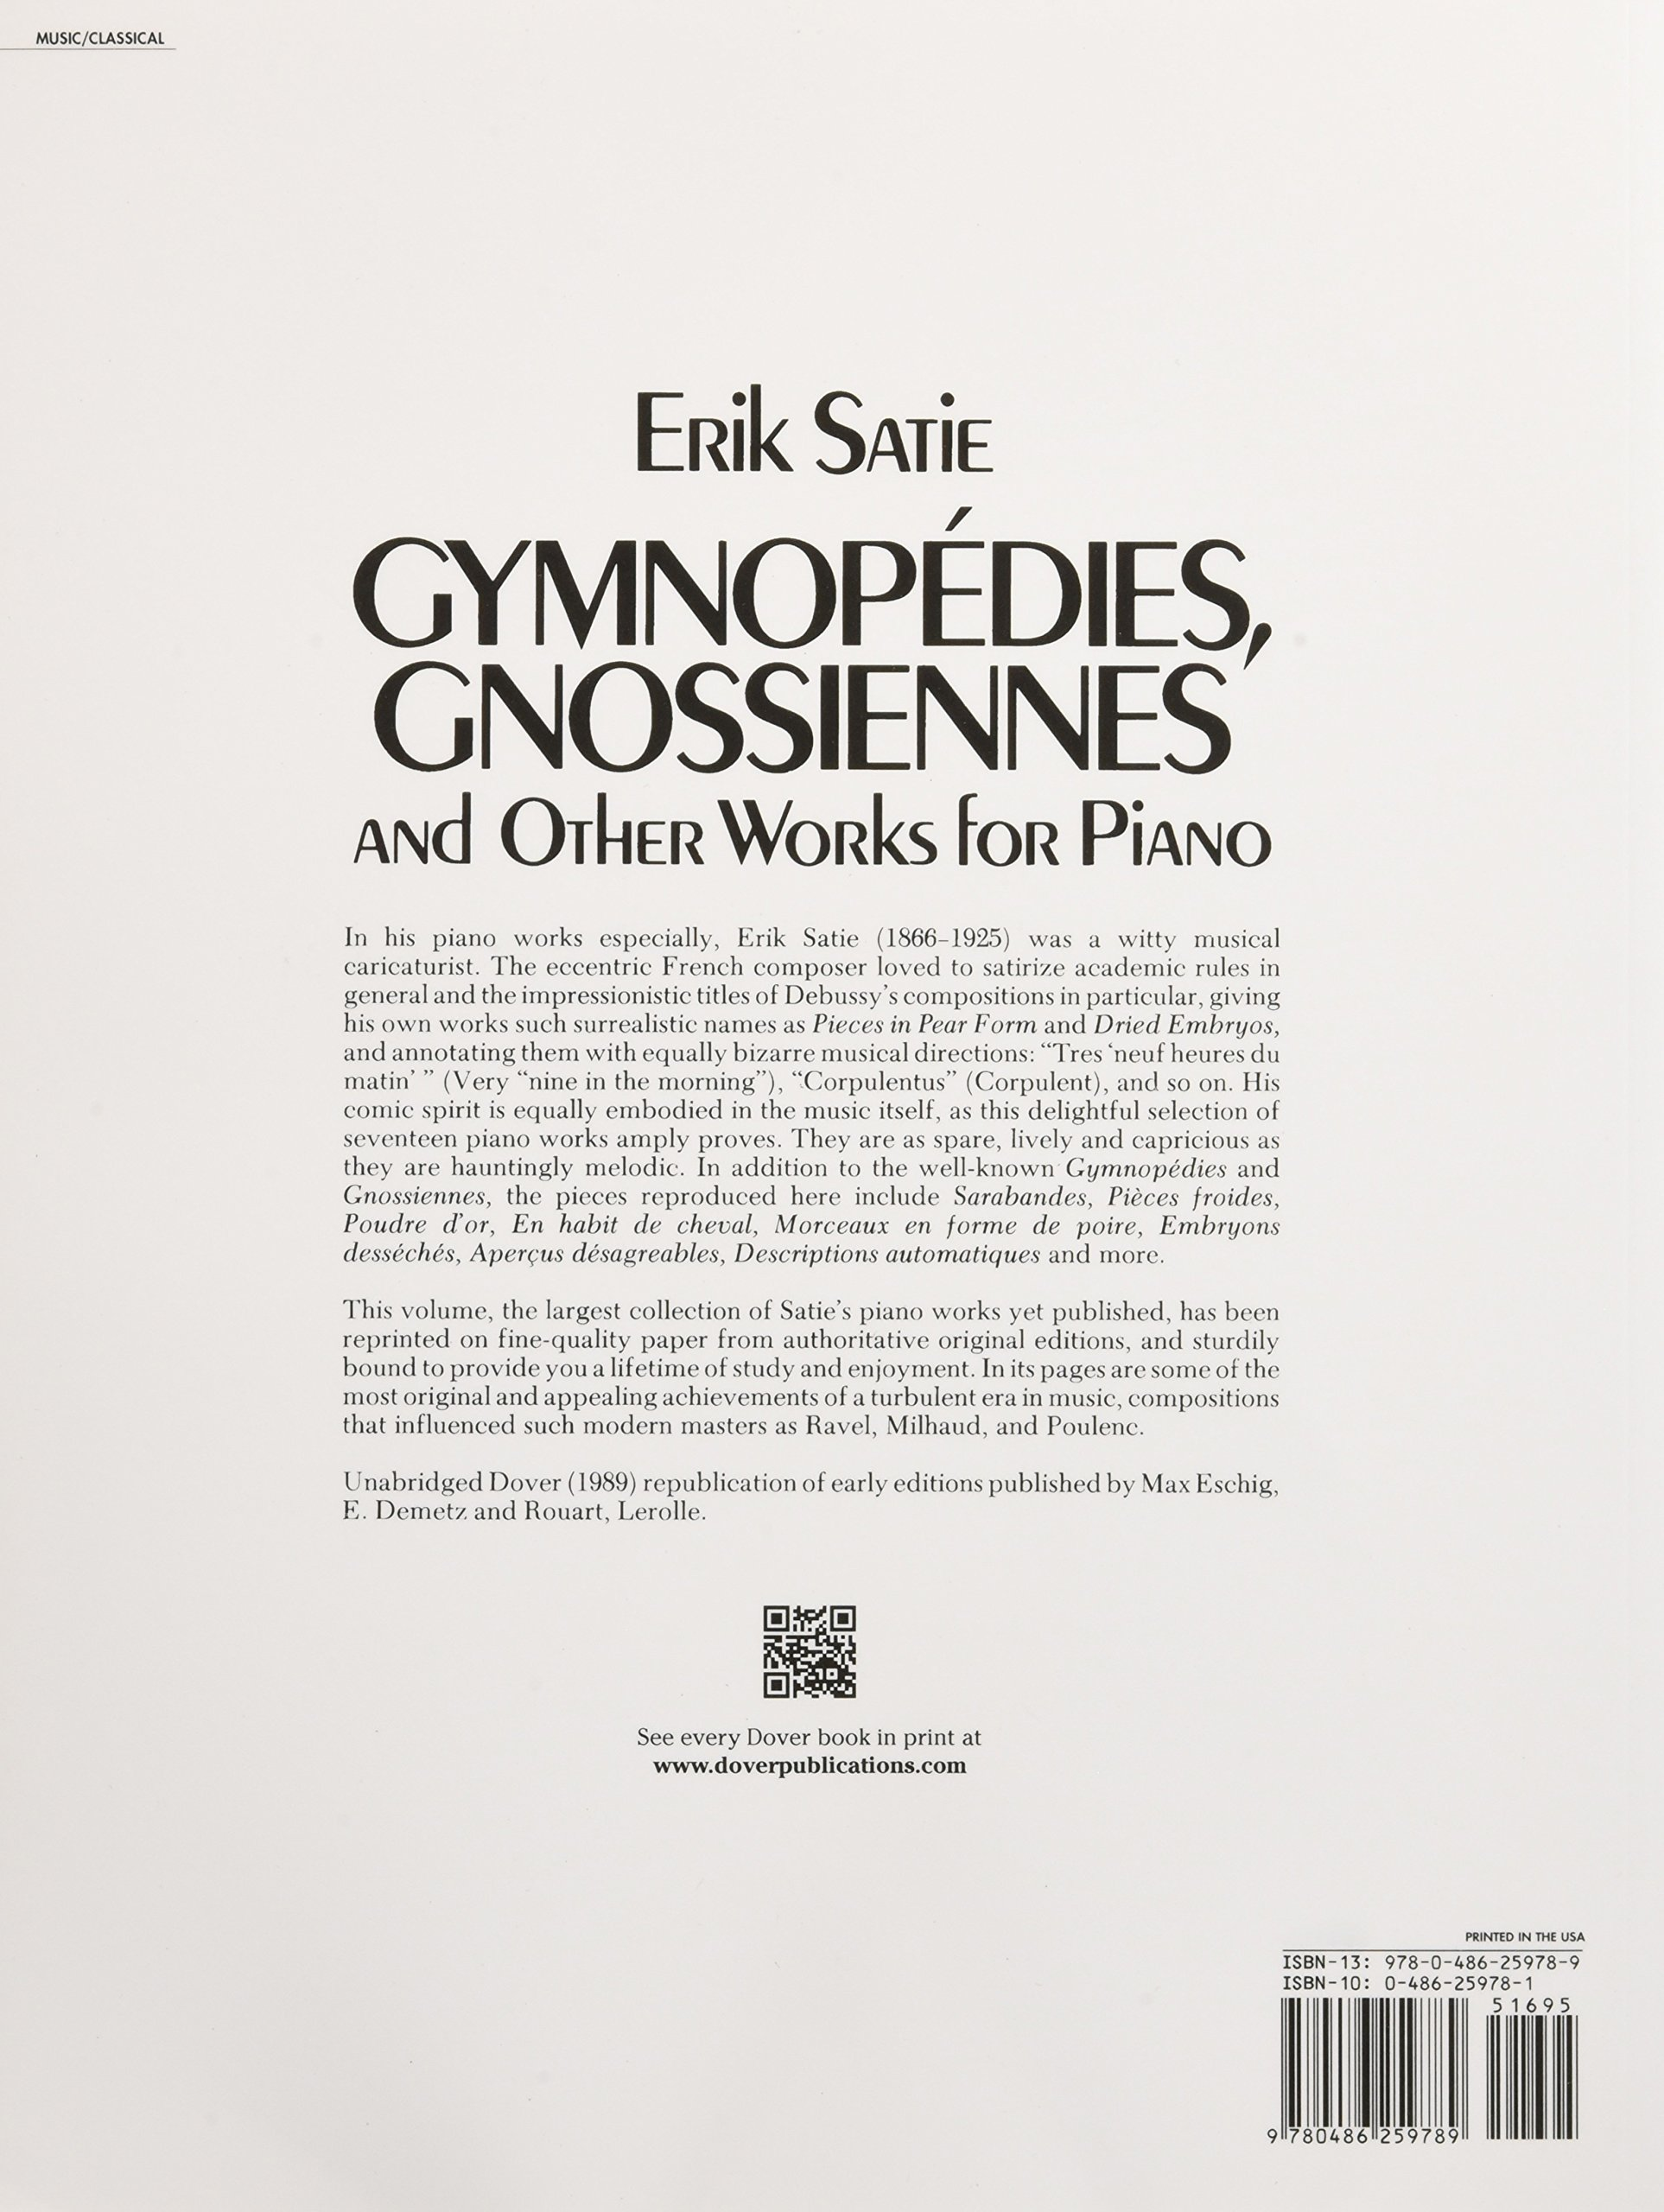 amazon satie gymnopedies gnossiennes and other works for piano